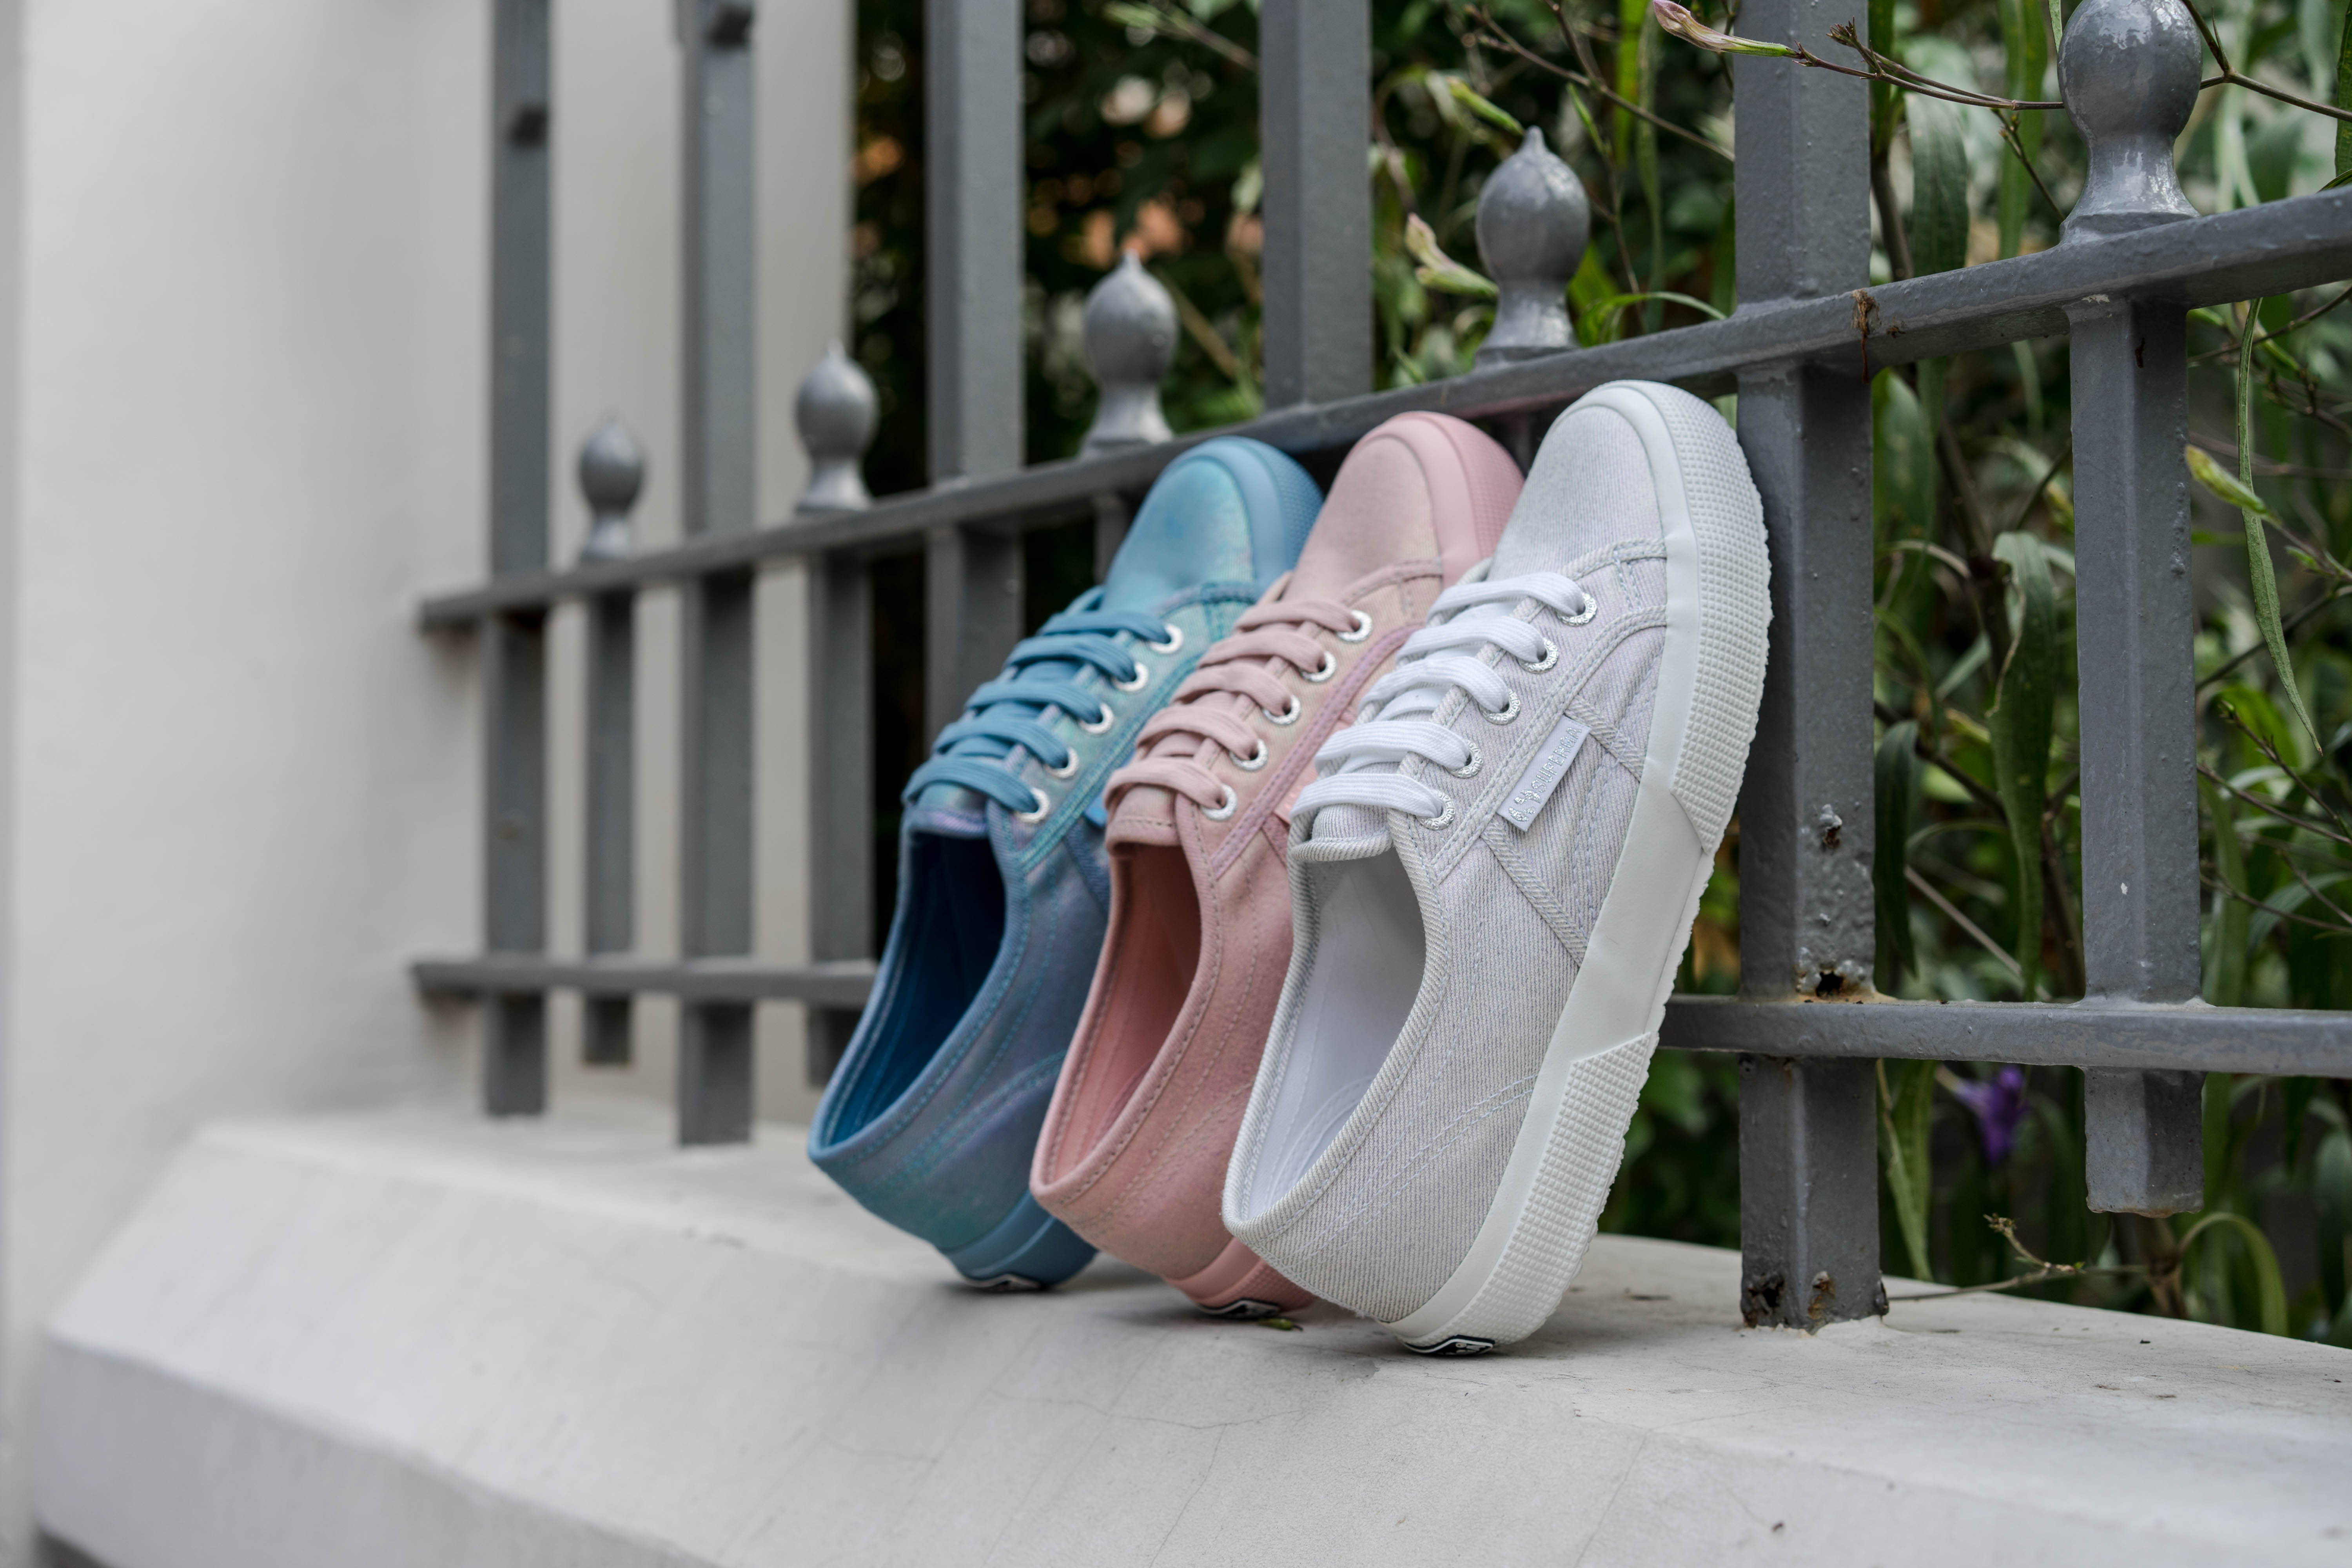 Superga sneakers at VivoCity from June